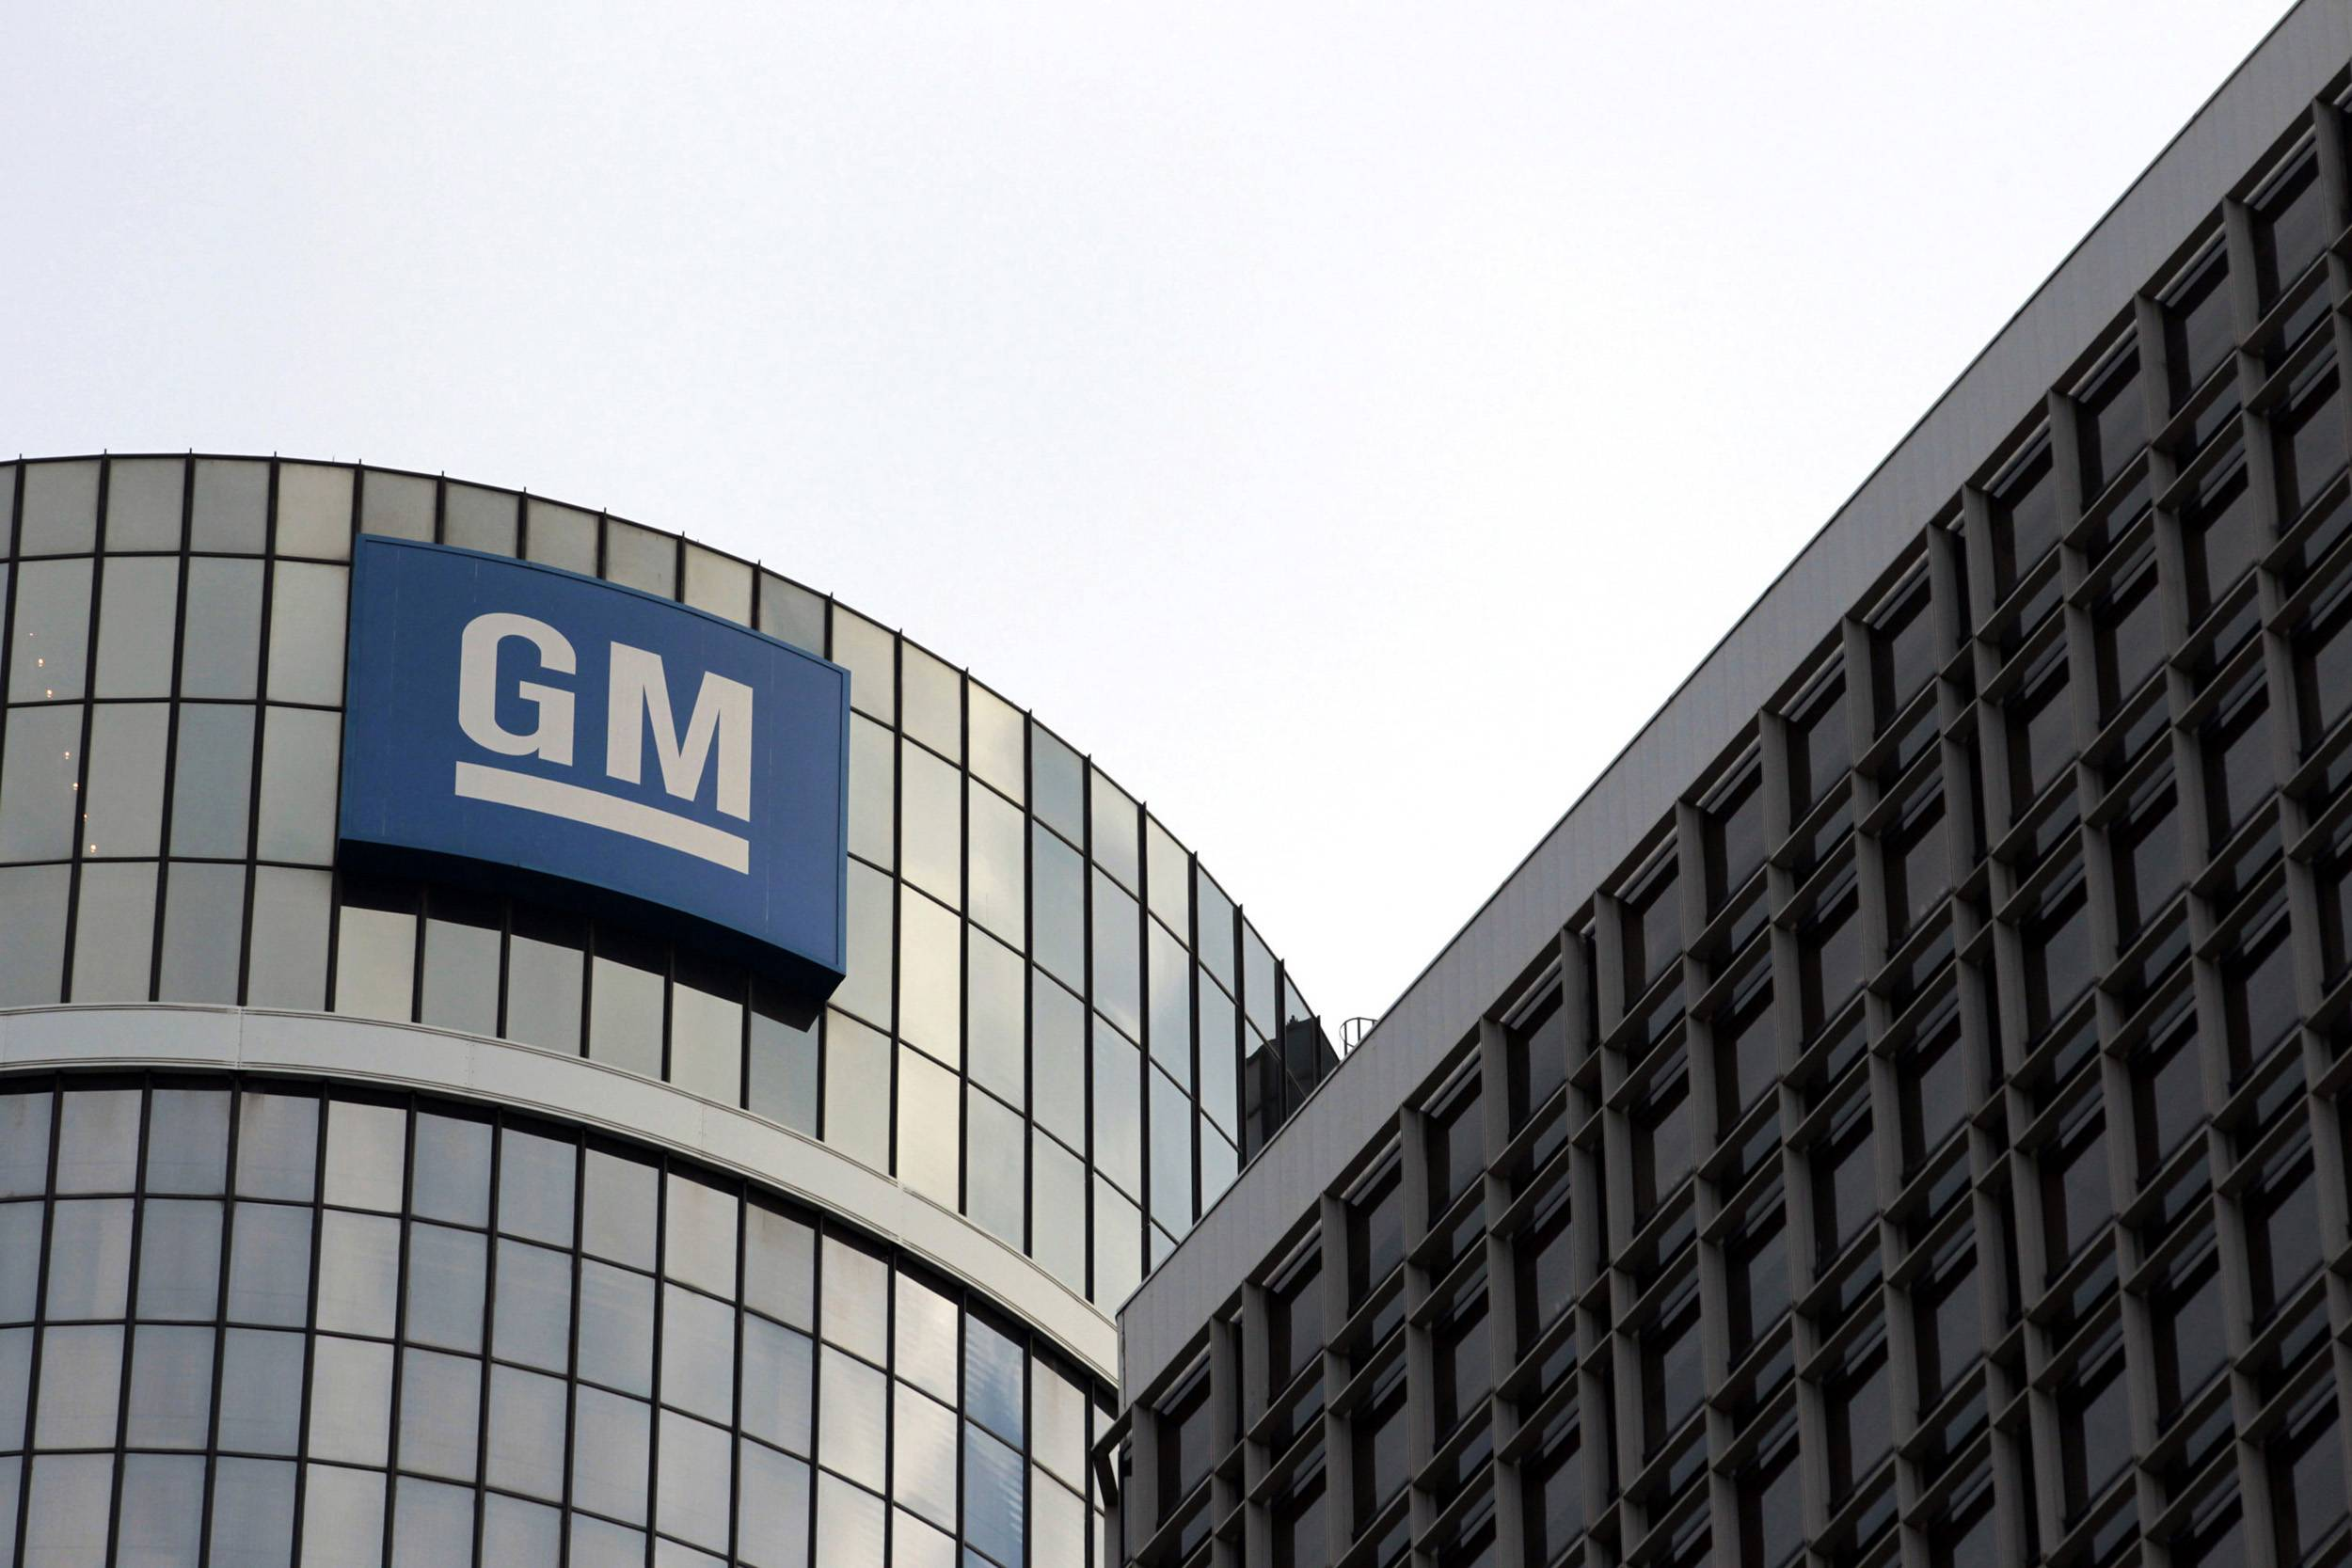 DETROIT -- General Motors is replacing the executives in charge of communications and human resources as it struggles with a string of embarrassing recalls that have led to congressional hearings and federal investigations. Communications chief Selim Bingol and human resources head Melissa Howell are leaving the company to pursue other interests, the company said Monday in a statement.